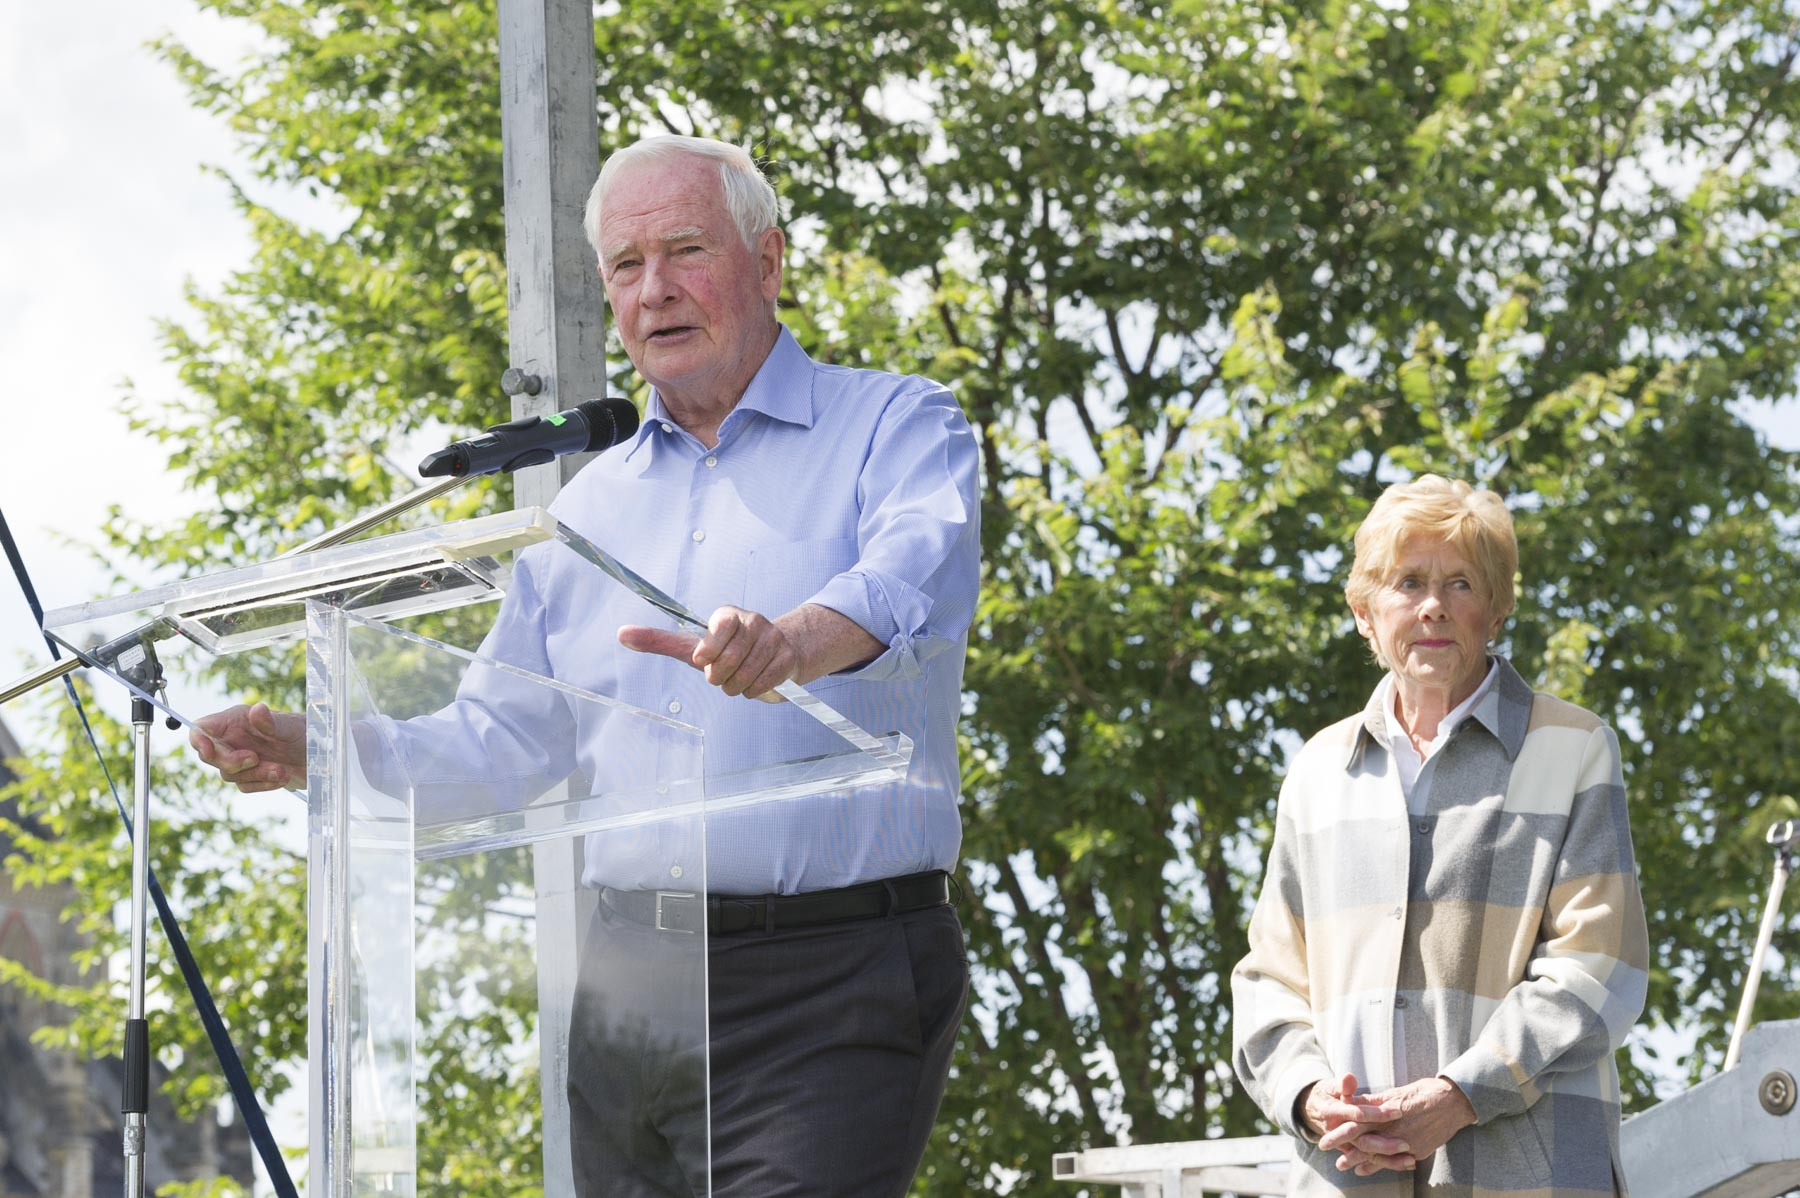 Their Excellencies attended The Great Trail Cross-Canada Connection Celebration as patrons of the Trans Canada Trail.